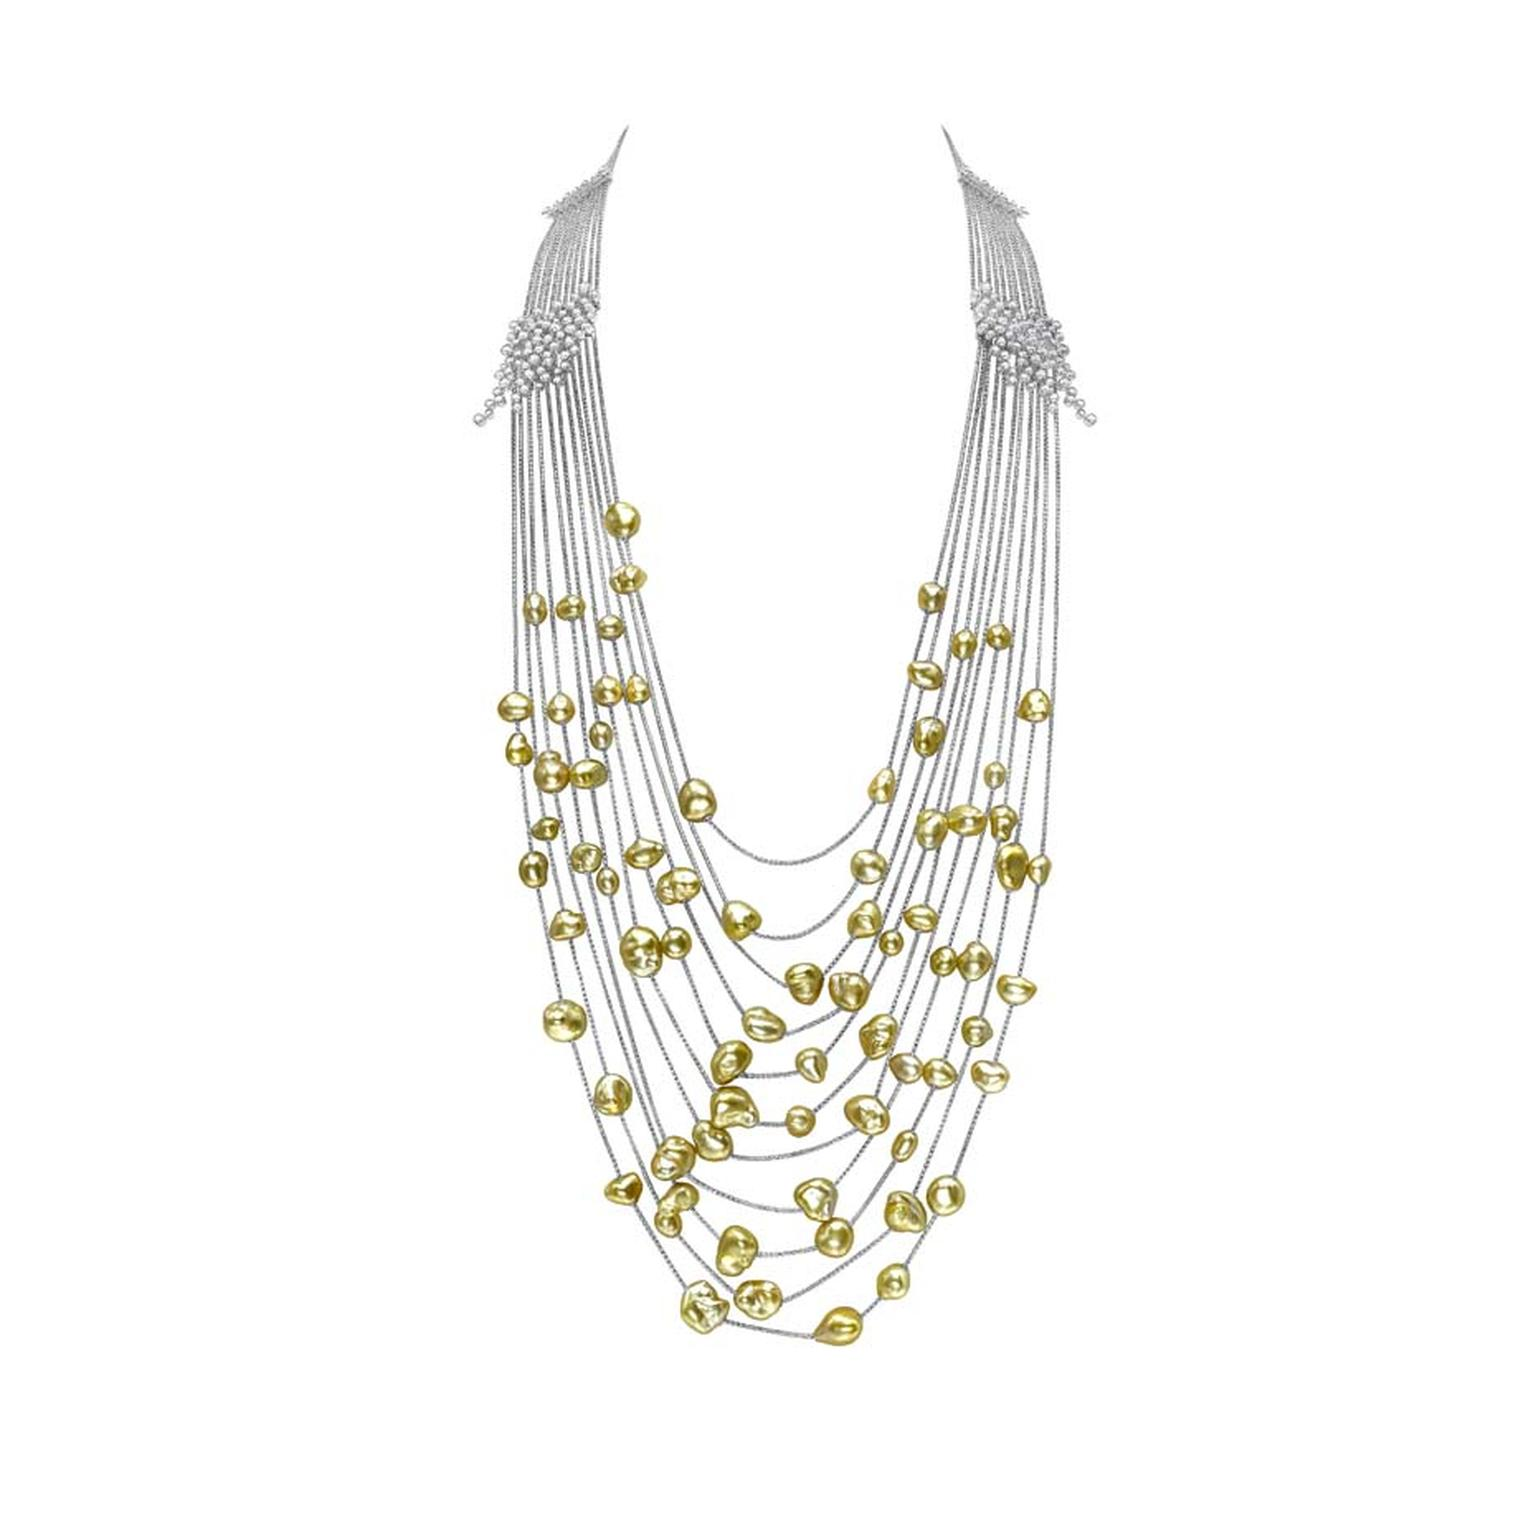 Mikimoto Regalia Collection Gold Cascade necklace featuring gold pearls amidst round diamonds and white gold